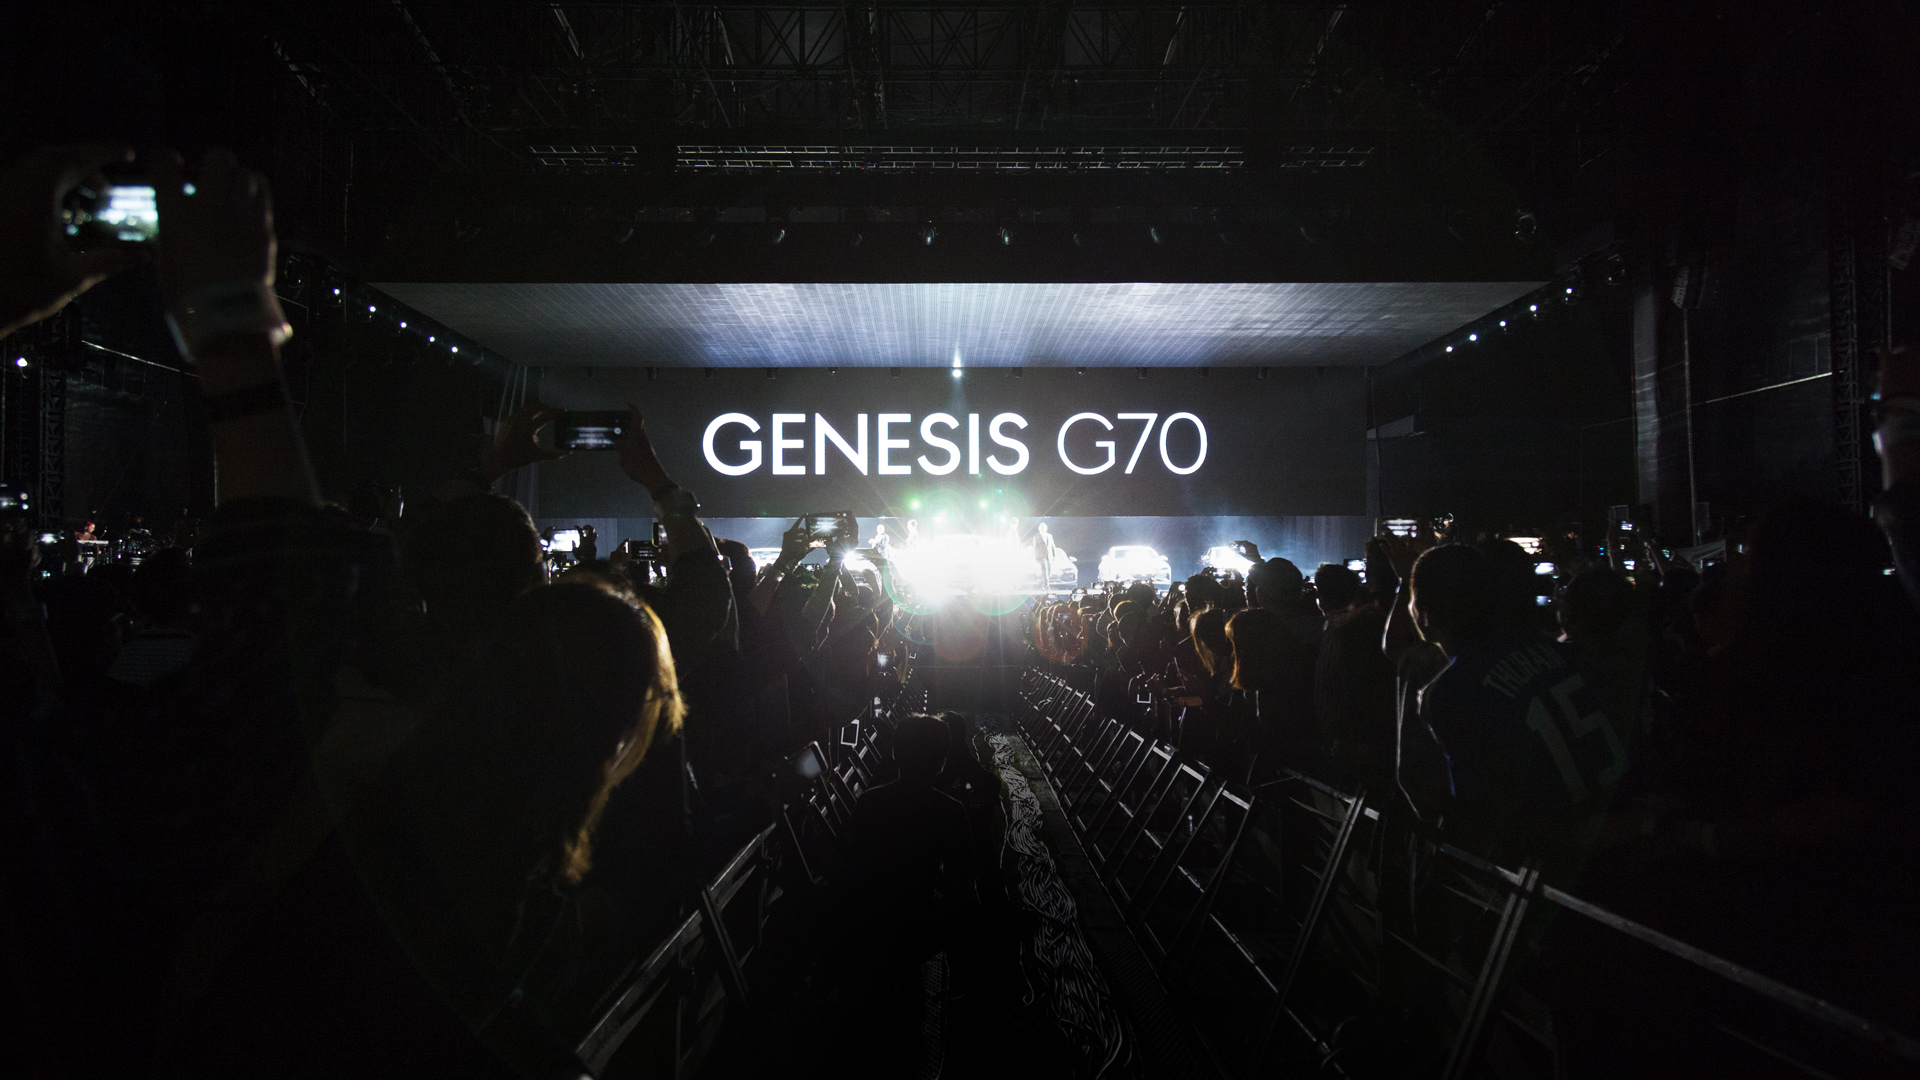 The picture shows the view from the aisle between the audience to the stage, where Genesis G70 is written in big letters.